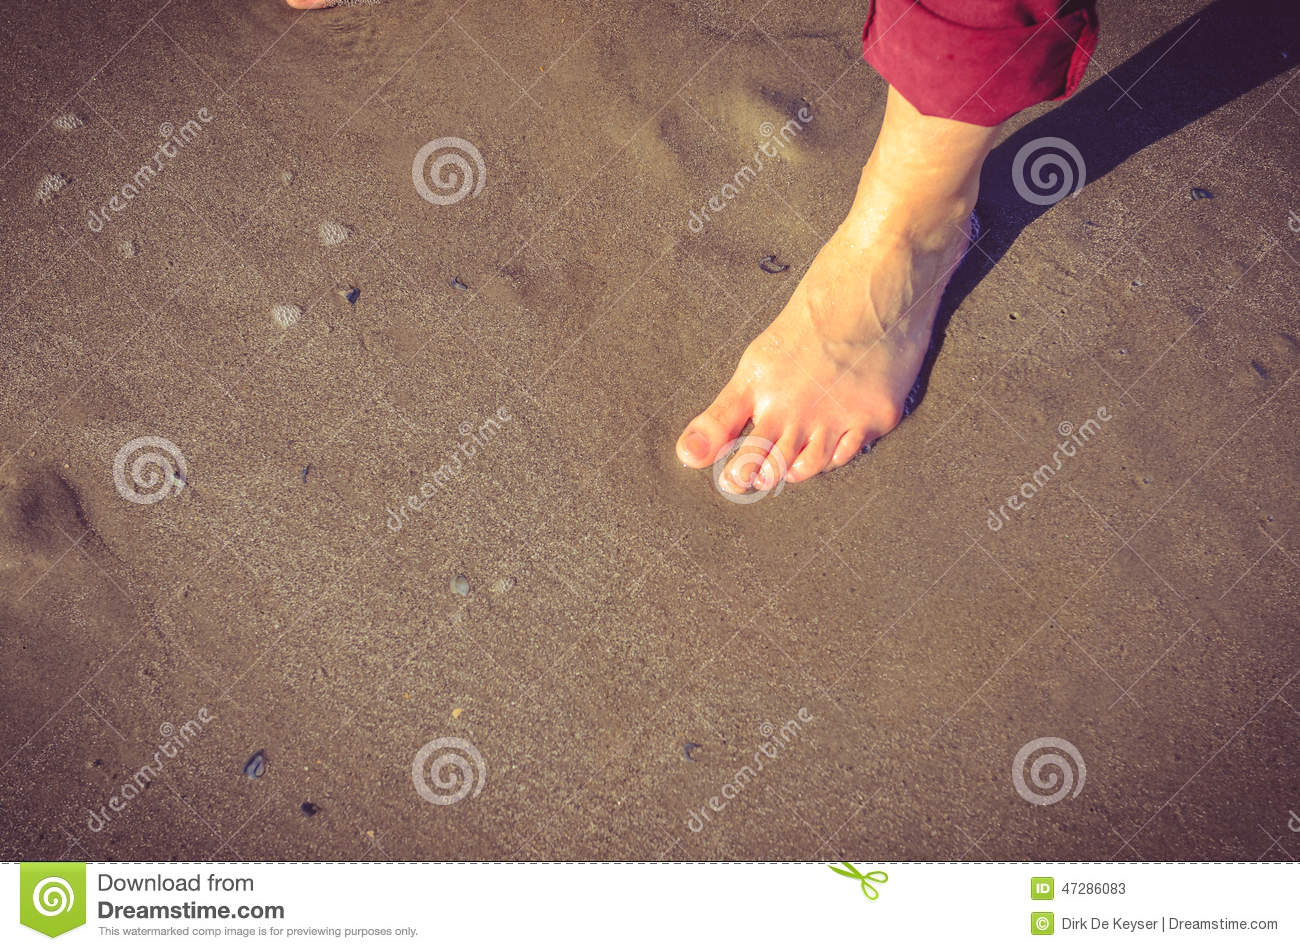 Woman foot on wet sand